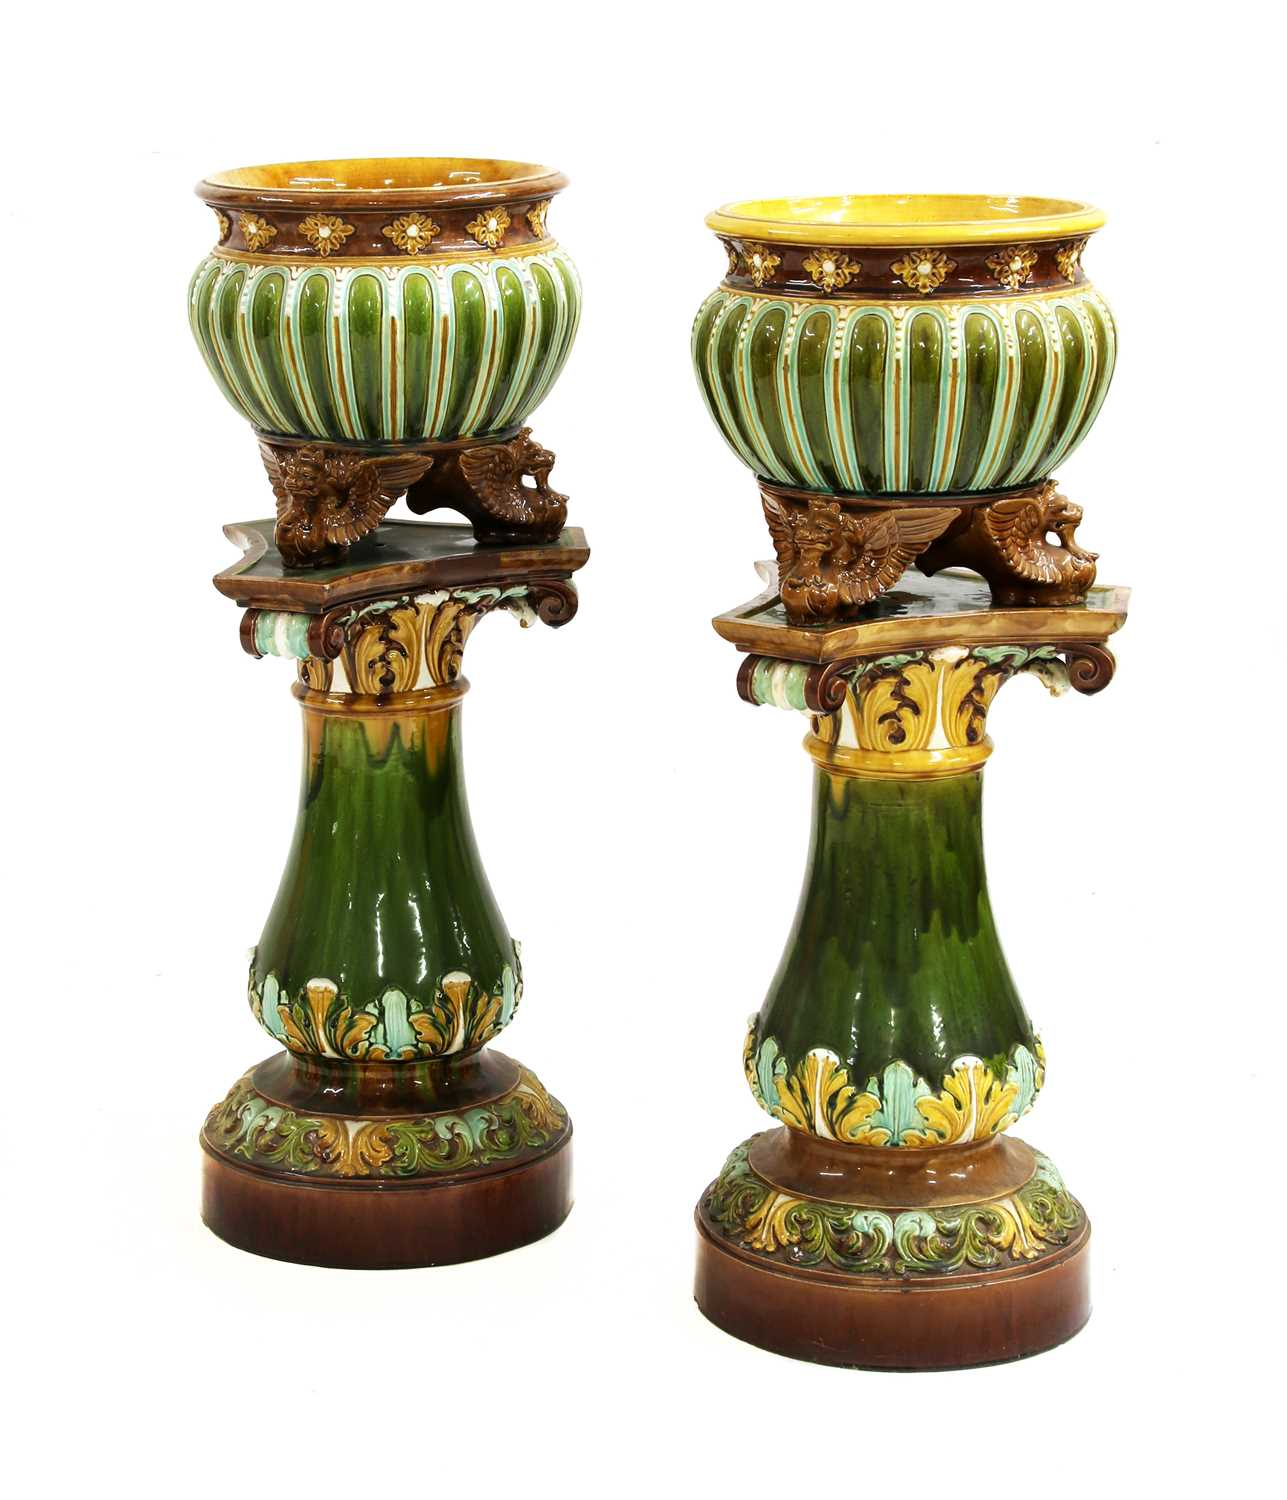 Lot 6 - A pair of Doulton Lambeth stoneware jardinières on stands